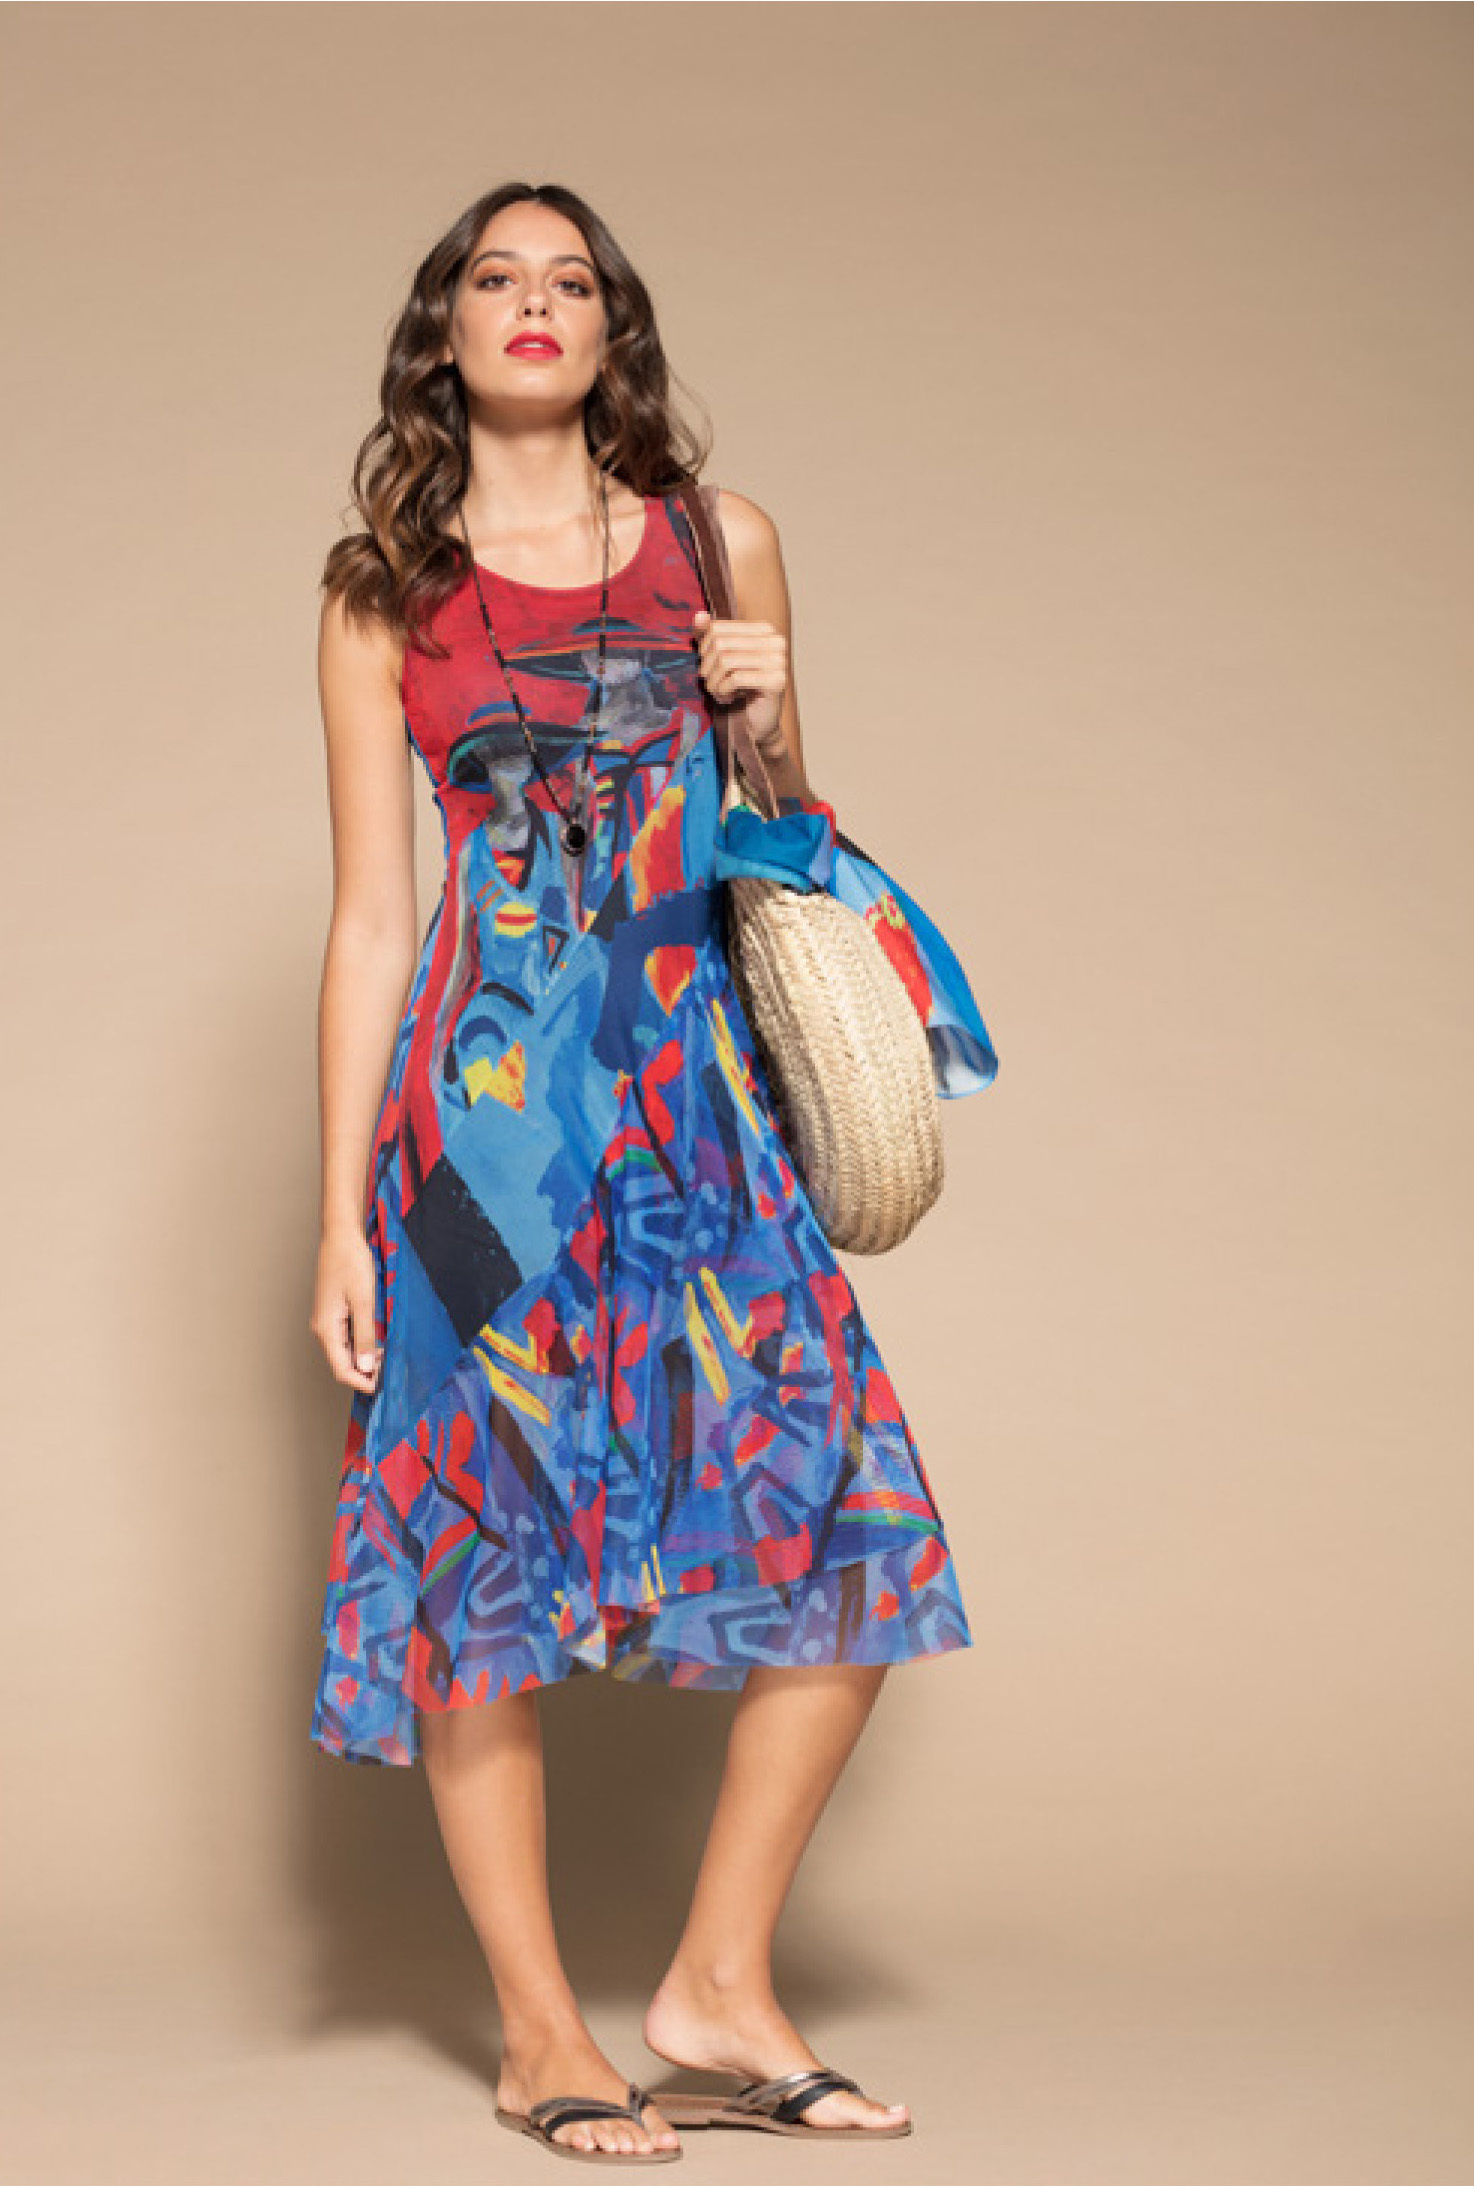 Maloka: Color Of Picasso Gypsy Beauty Art Midi Sundress (In Pink Isles Art, Click for More Color Options)